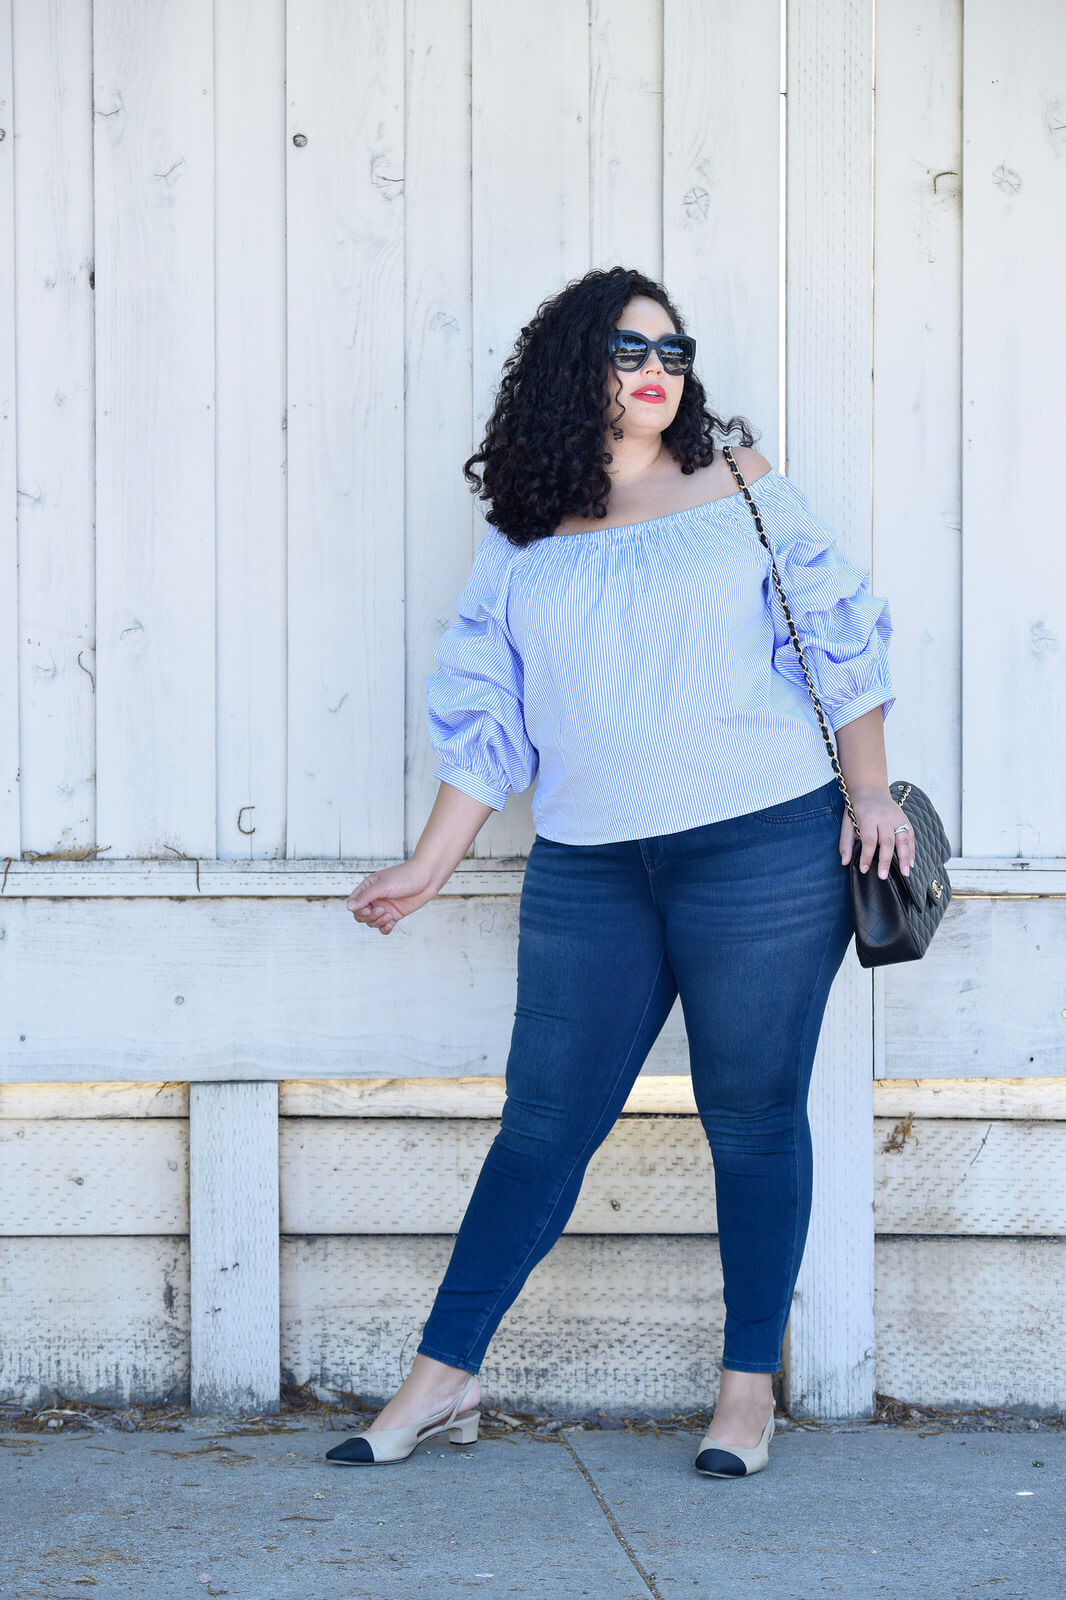 A Casual Outfit Idea That isn't Boring via @GirlWithCurves